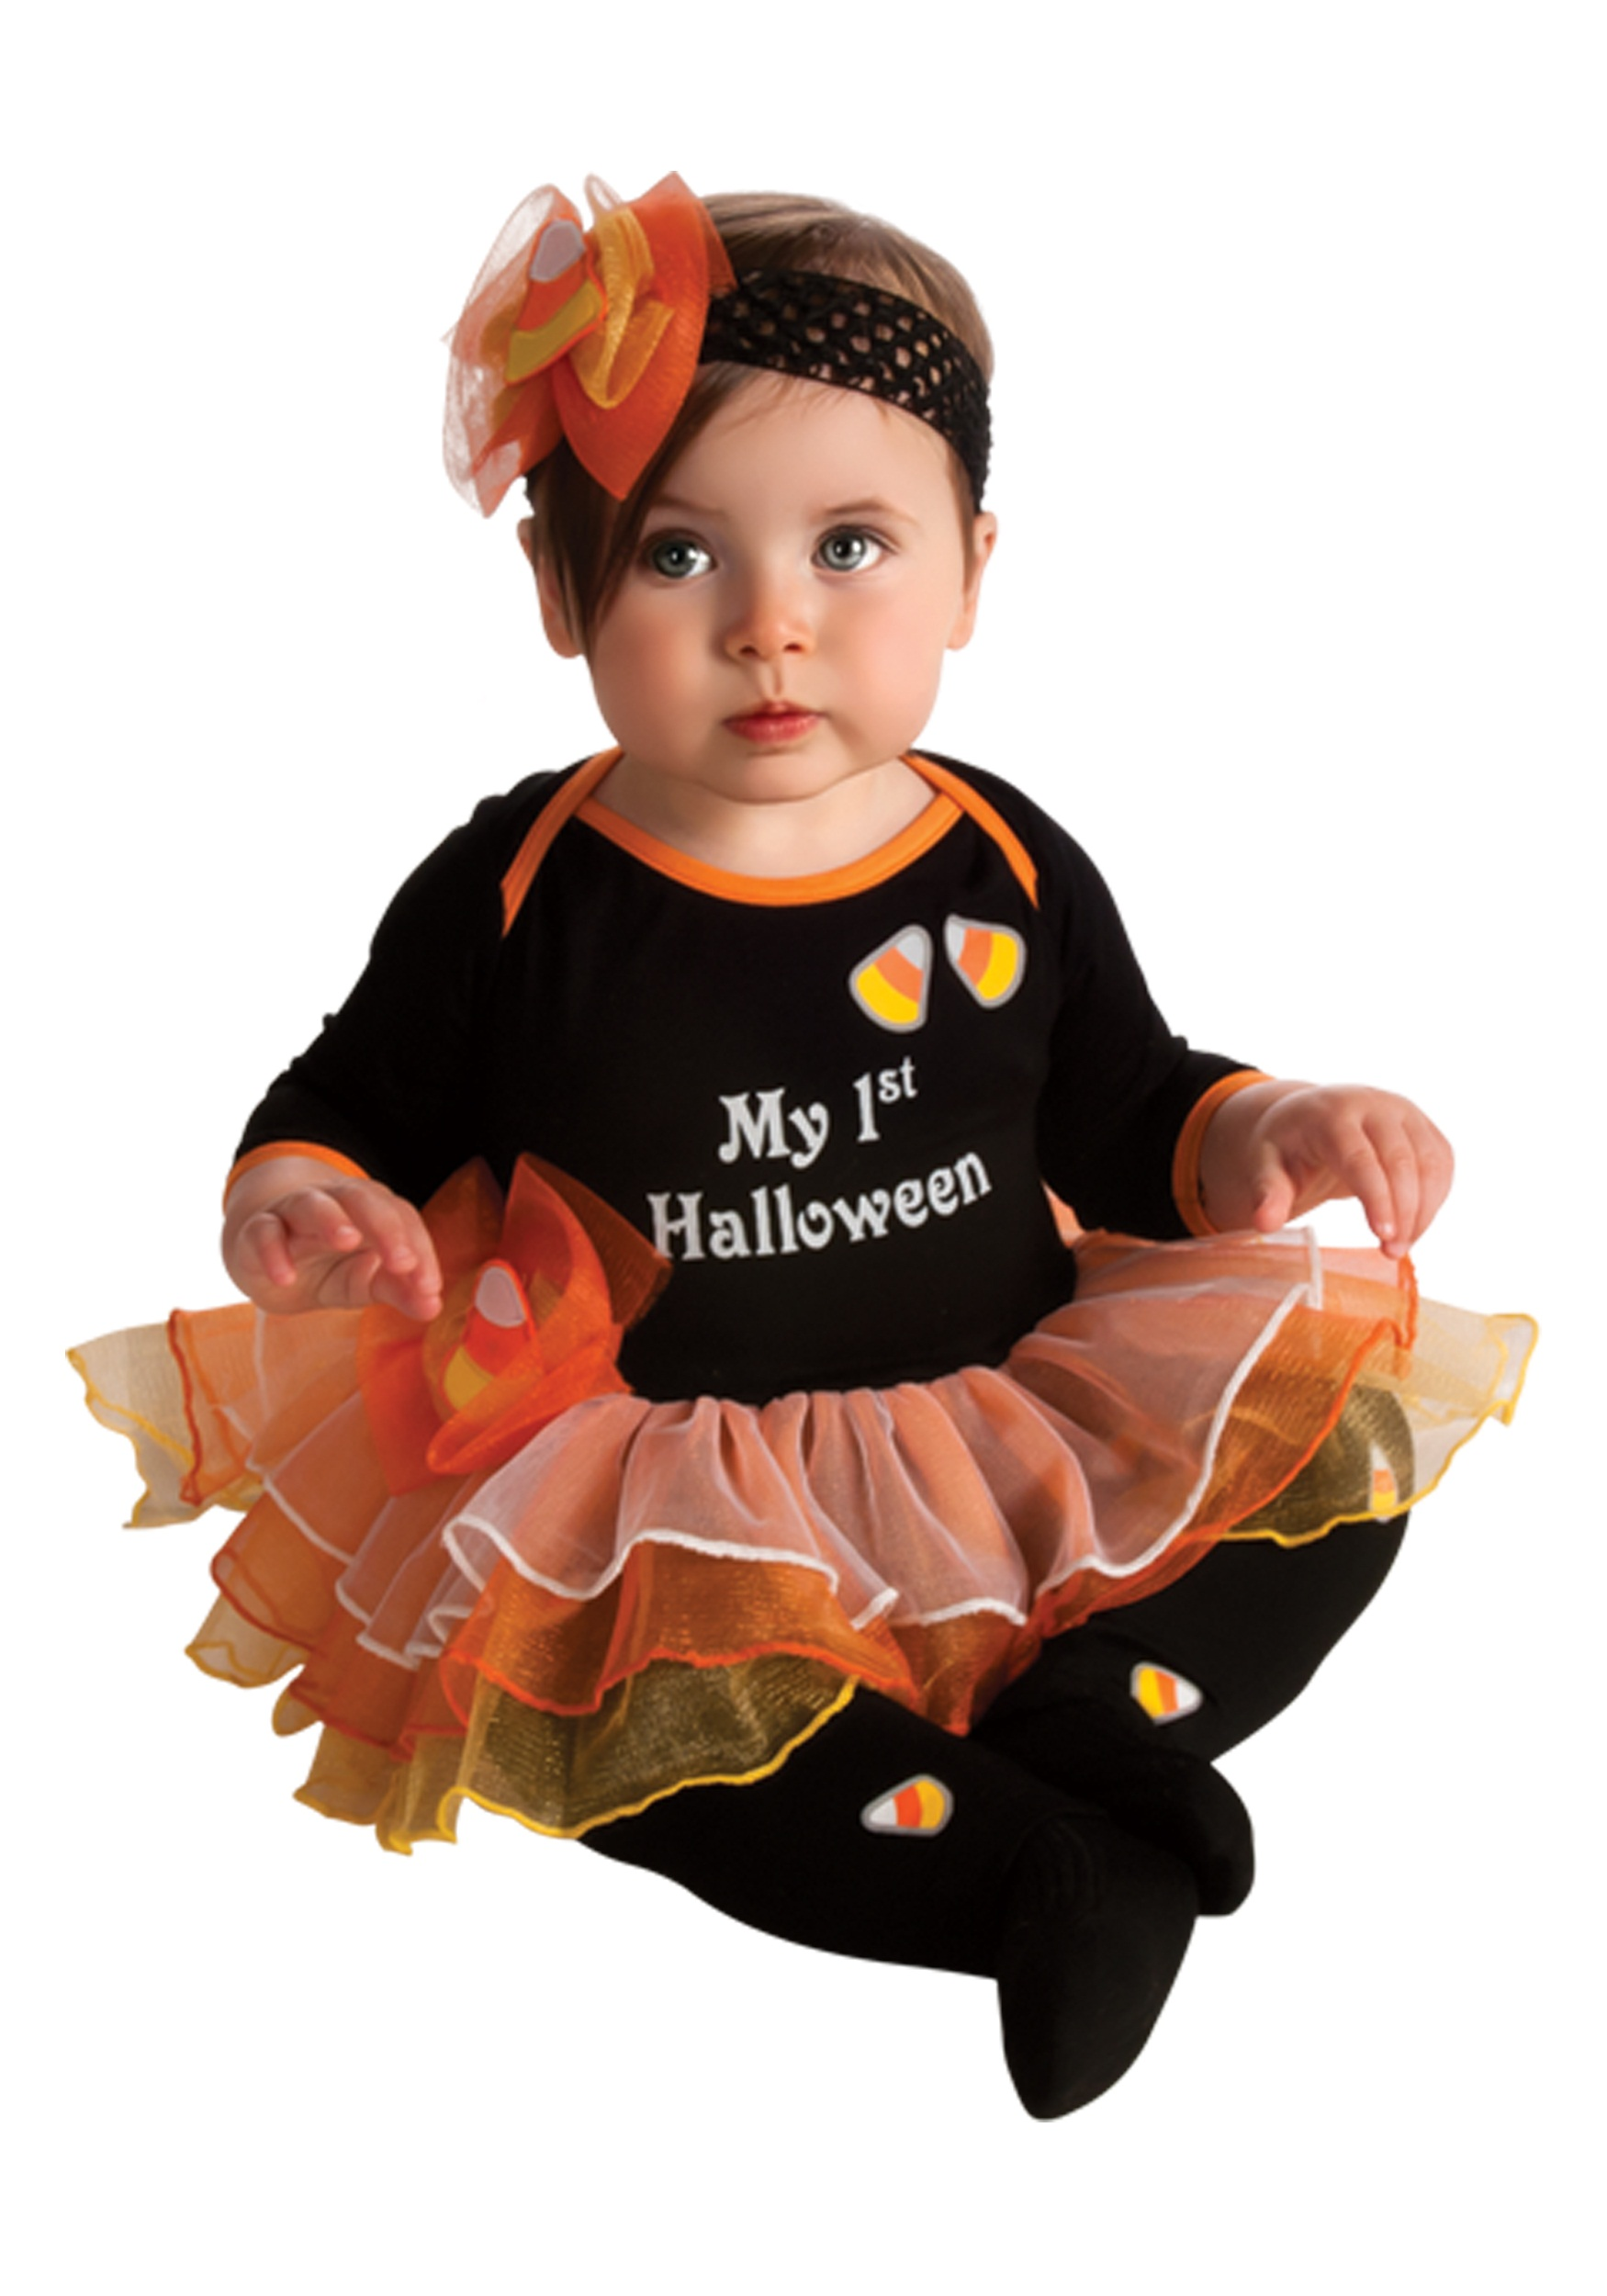 Halloween Costume 6 9 Months Uk.Baby Halloween Costumes 6 Months Baby Time Out Halloween Costume